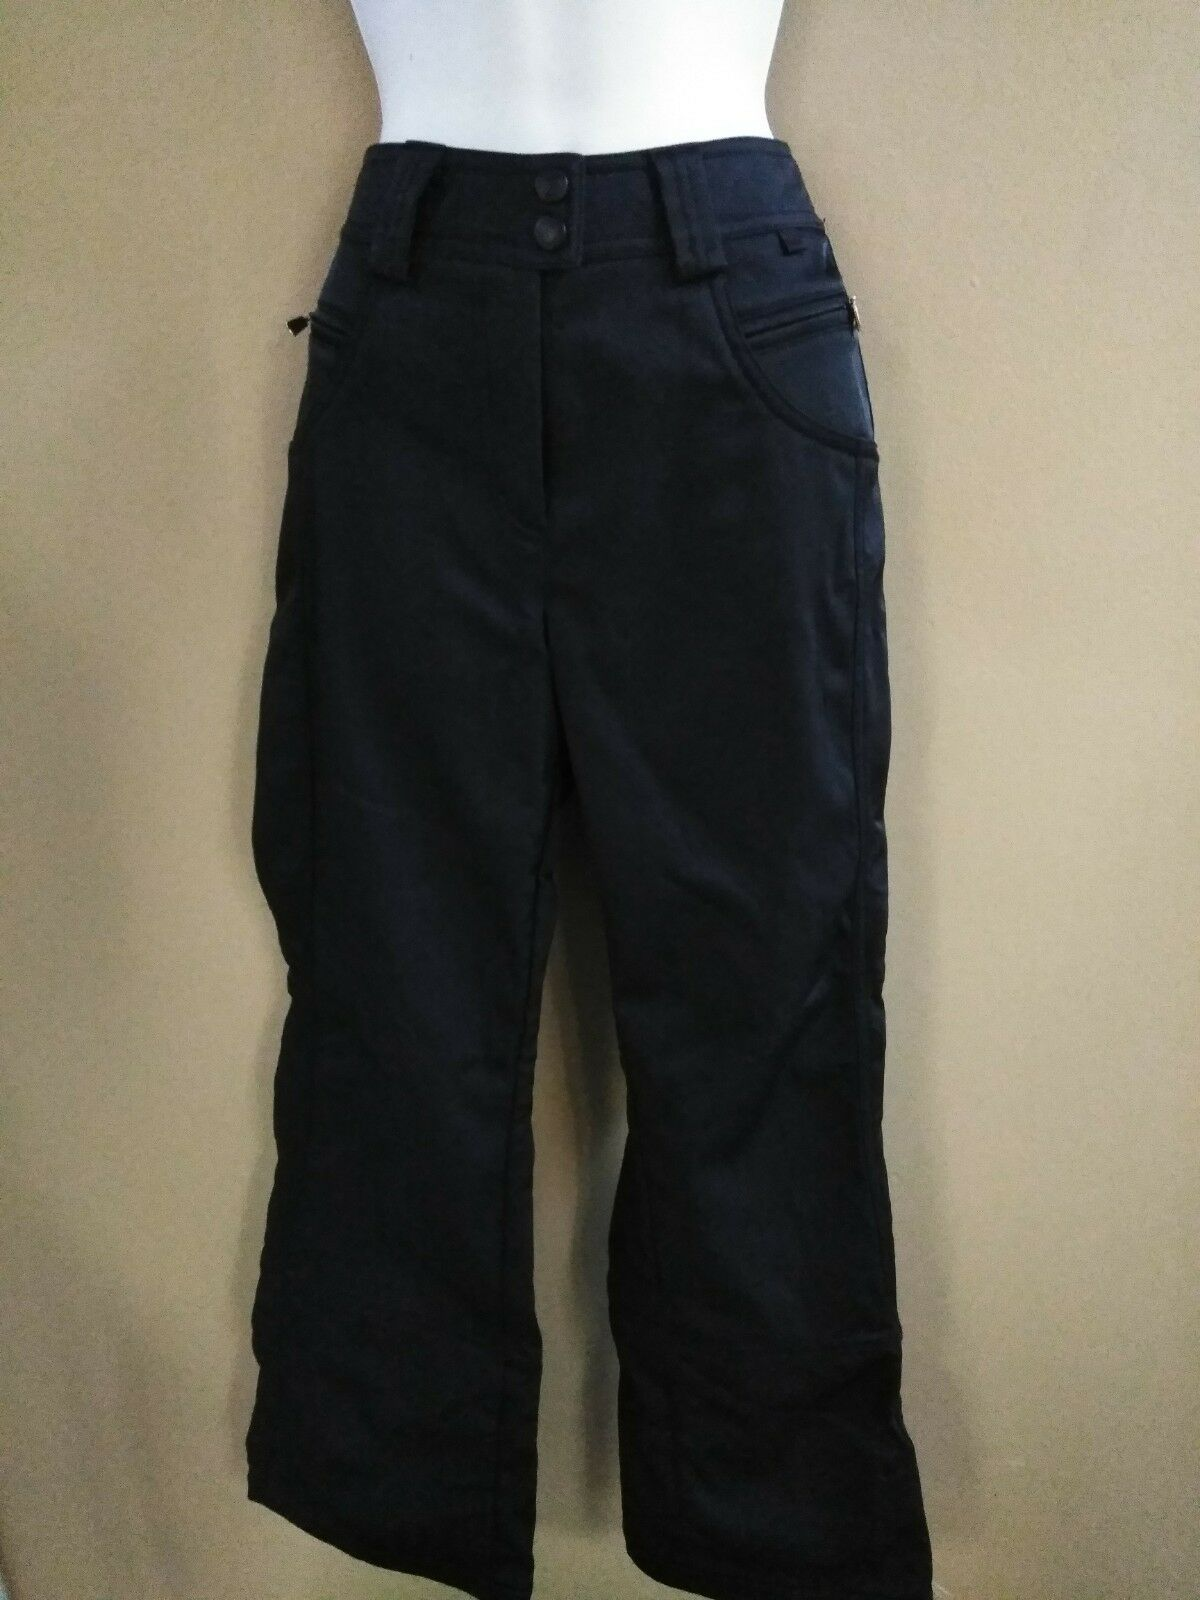 Marker Women's  Insulated Ski Pants  Size 4